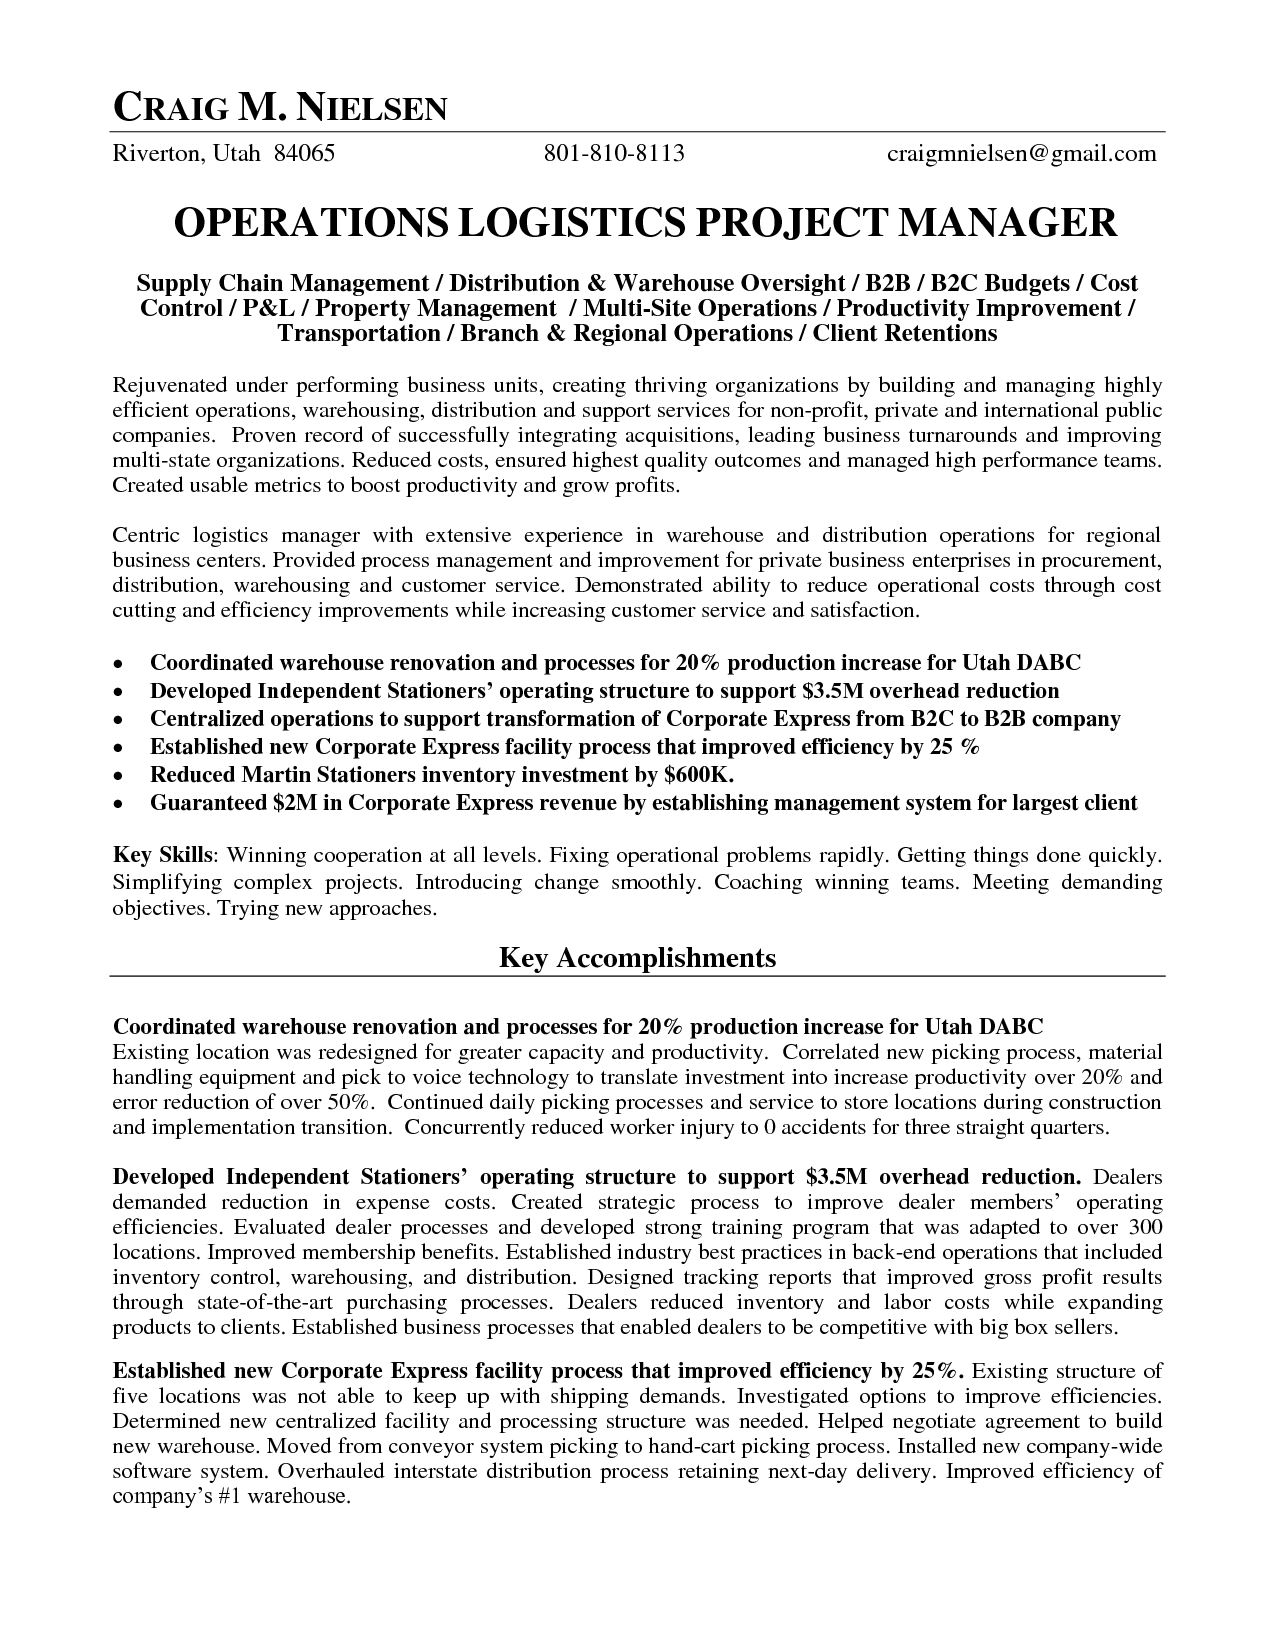 logistics operations manager resume operations logistics project